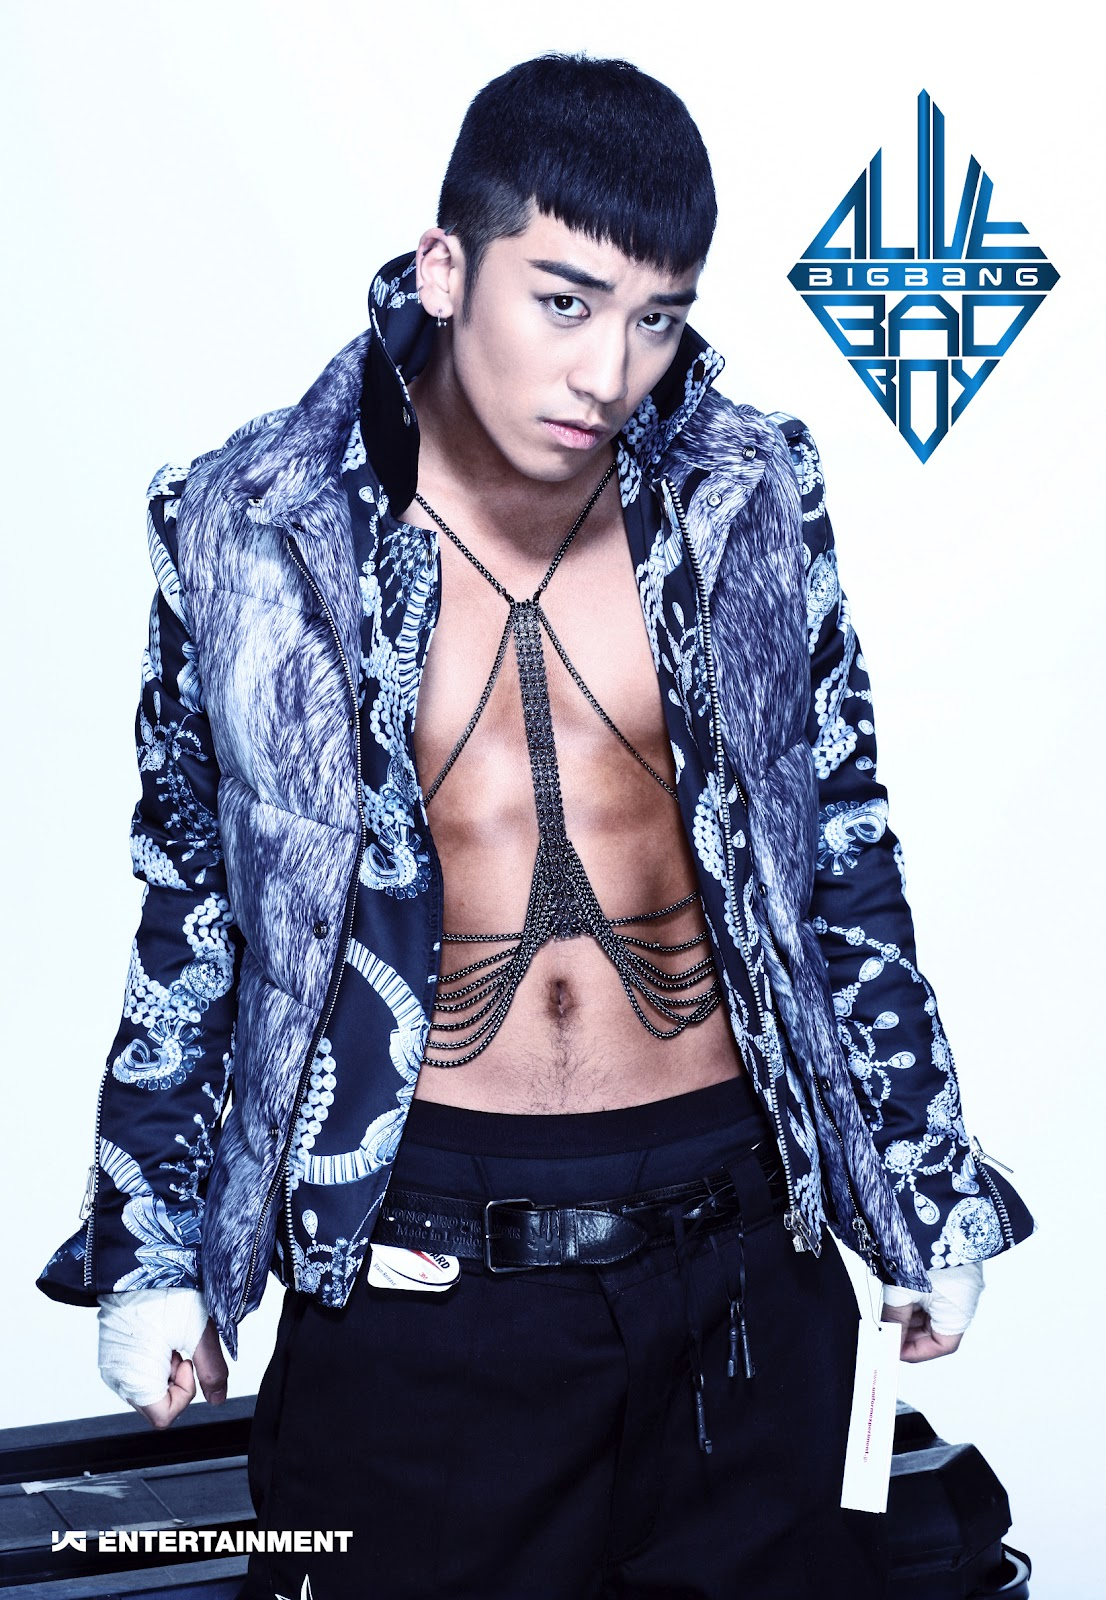 http://bigbangpl.files.wordpress.com/2012/02/seungri-badboy.jpg